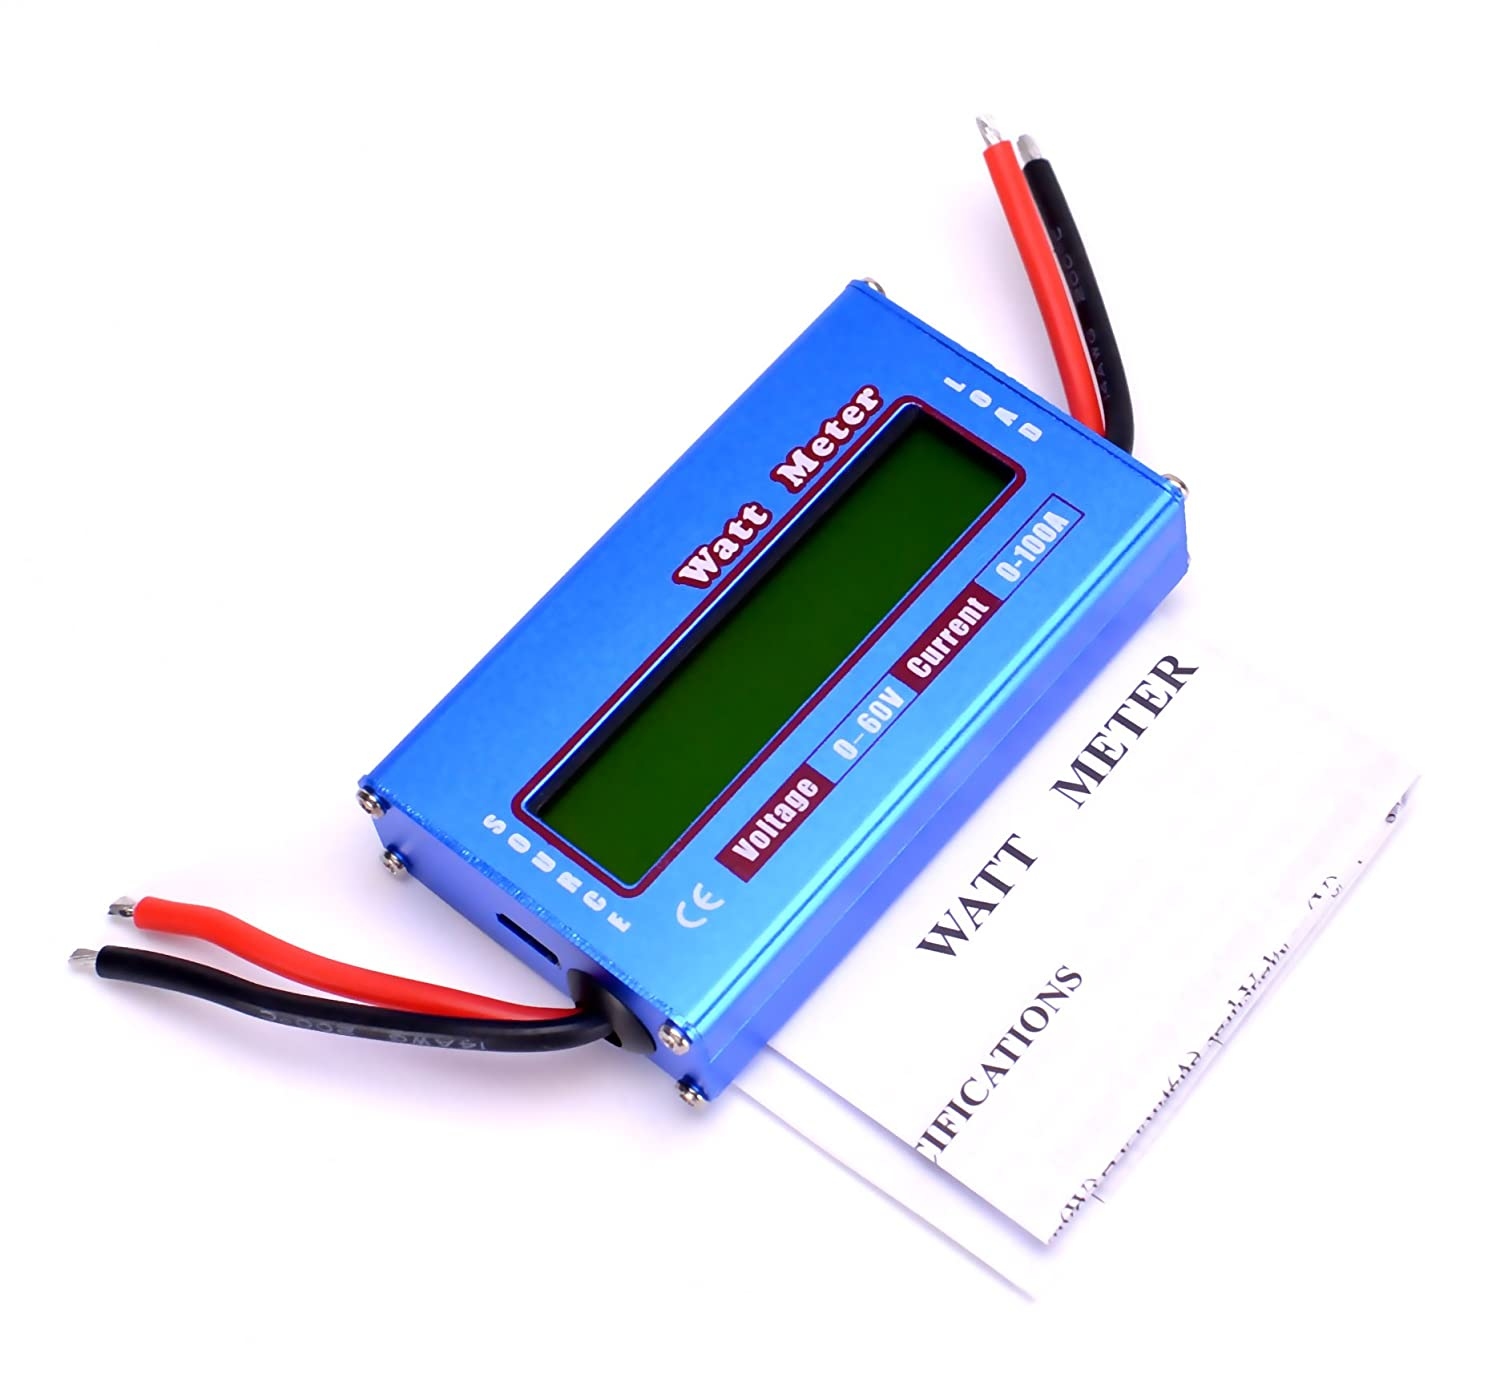 Rc Watt Meter Dc 60v 100a Power Analyzer Digital Lcd Balance Battery Trolling Motor Plug Wiring Diagram 3 Wire Connecter Voltage Checker Volt Amp